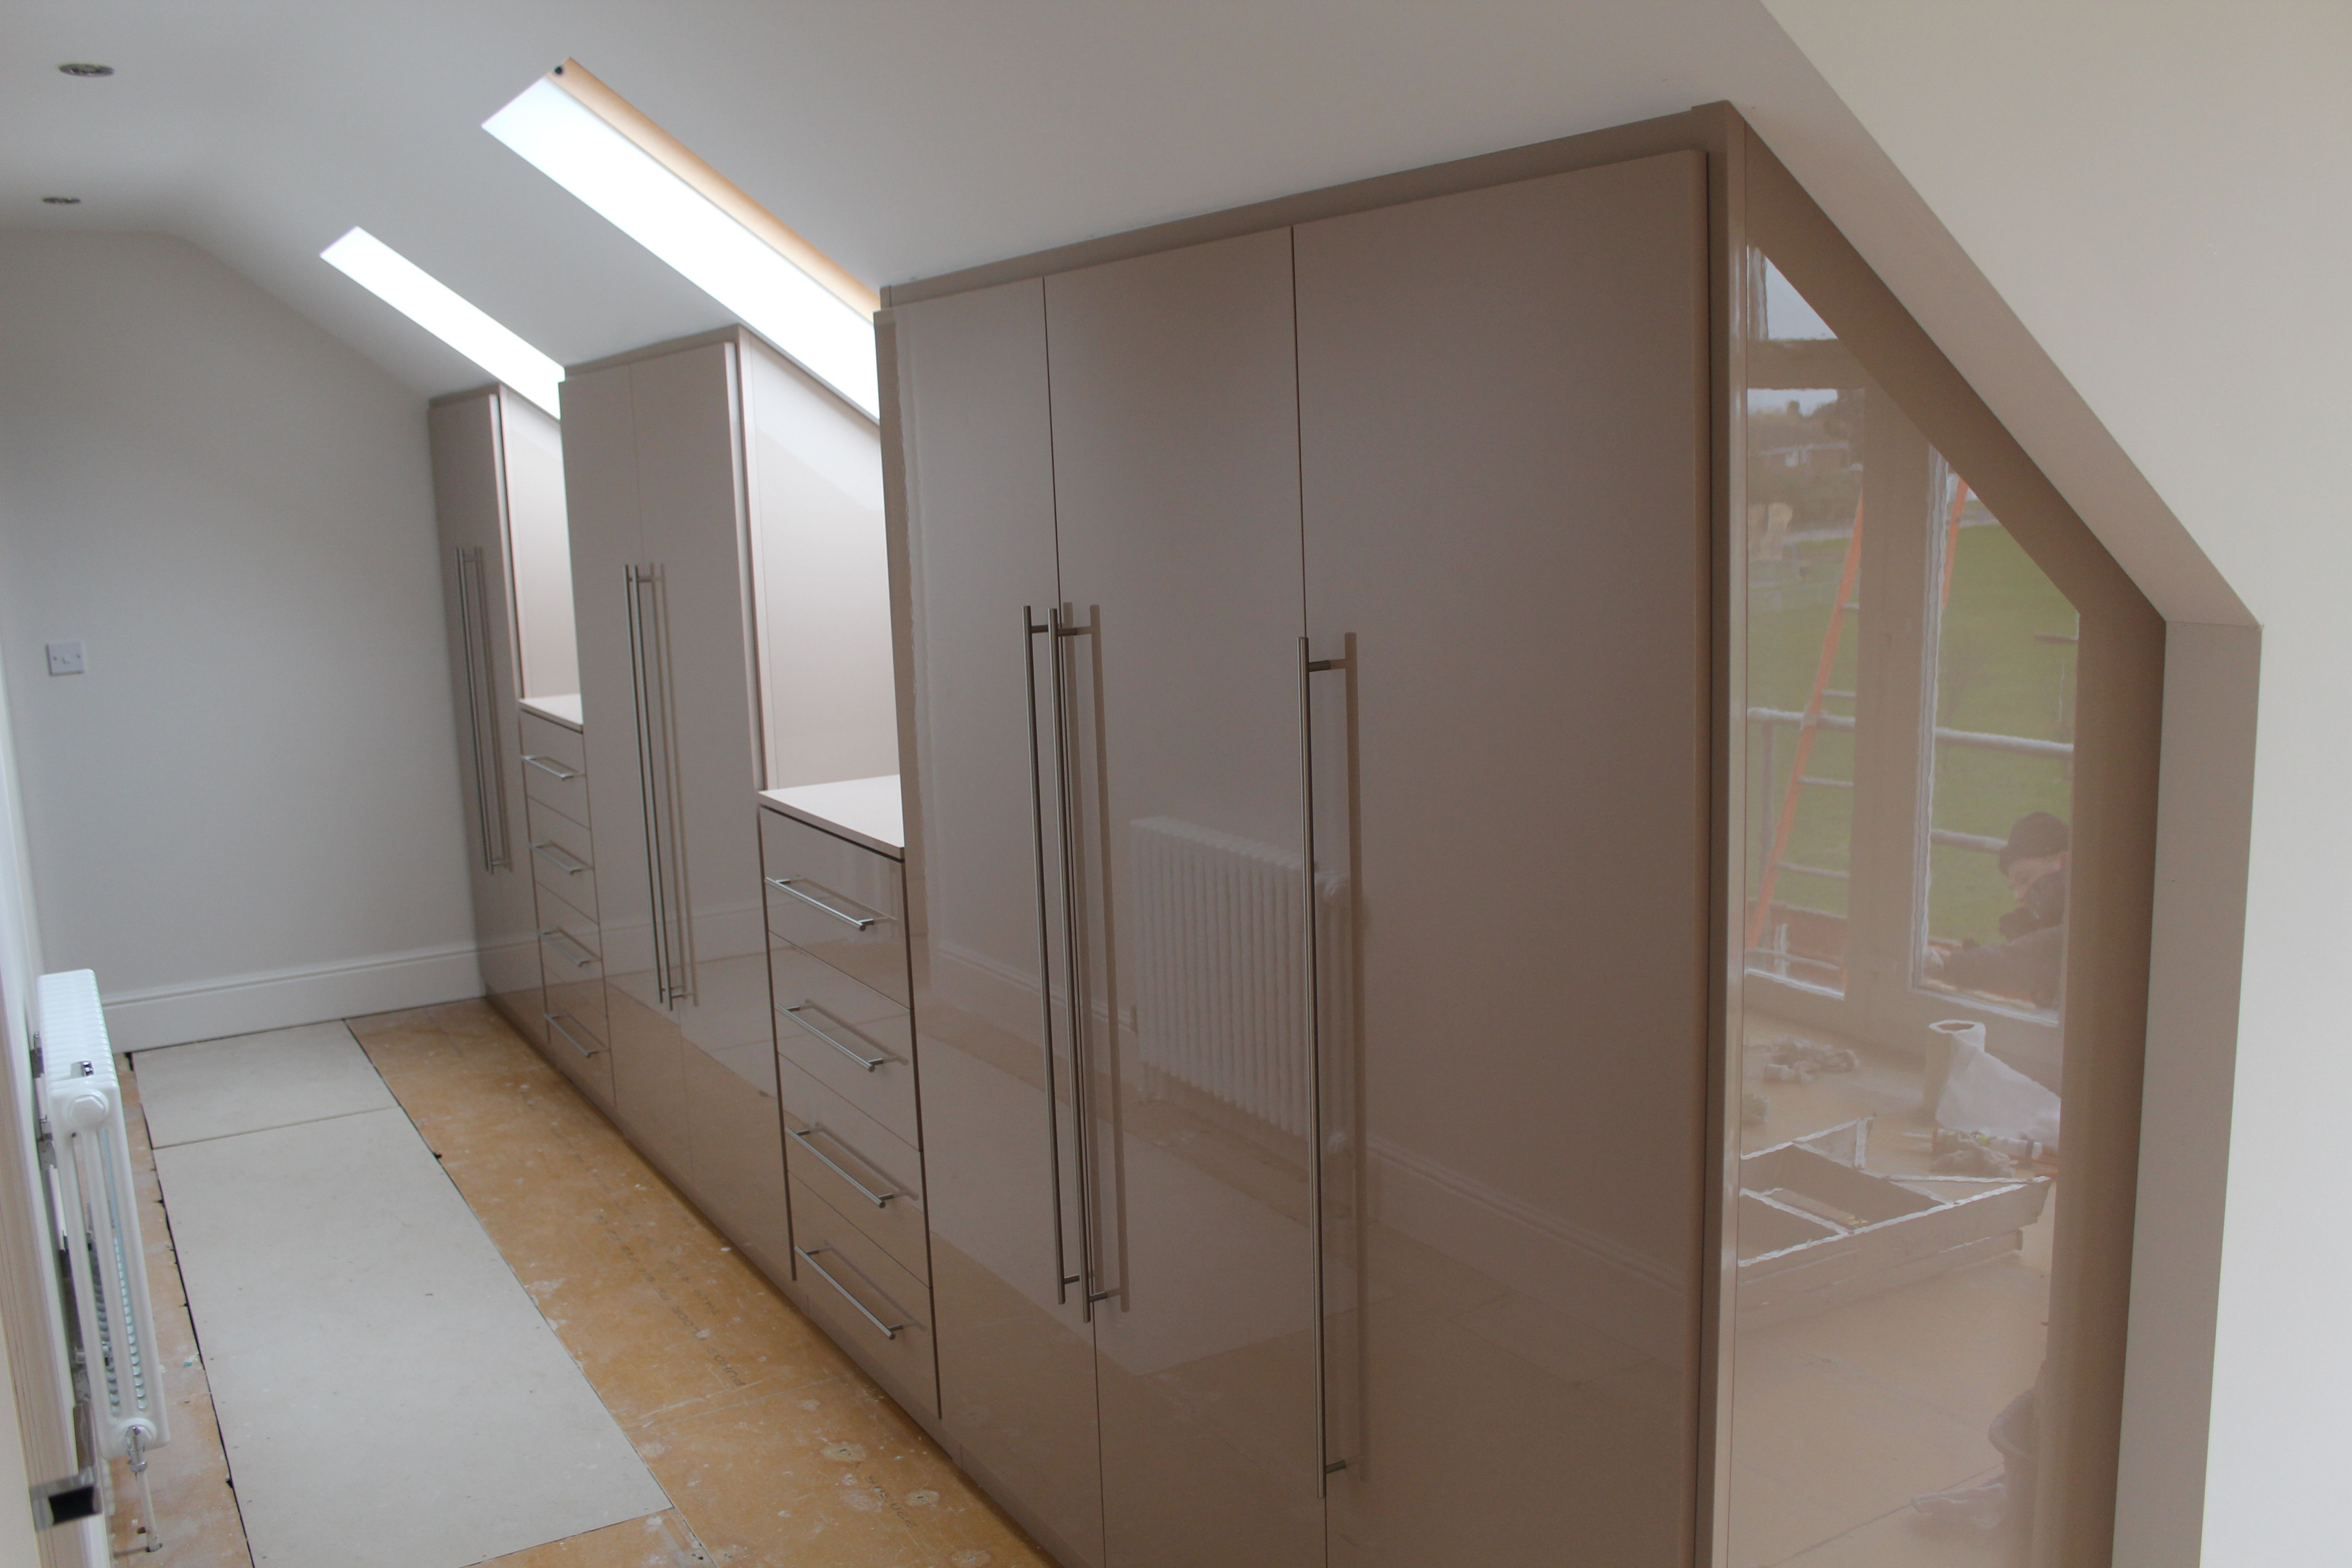 Loft Bedroom Storage Loft Conversion Wardrobes Google Search Projects To Try